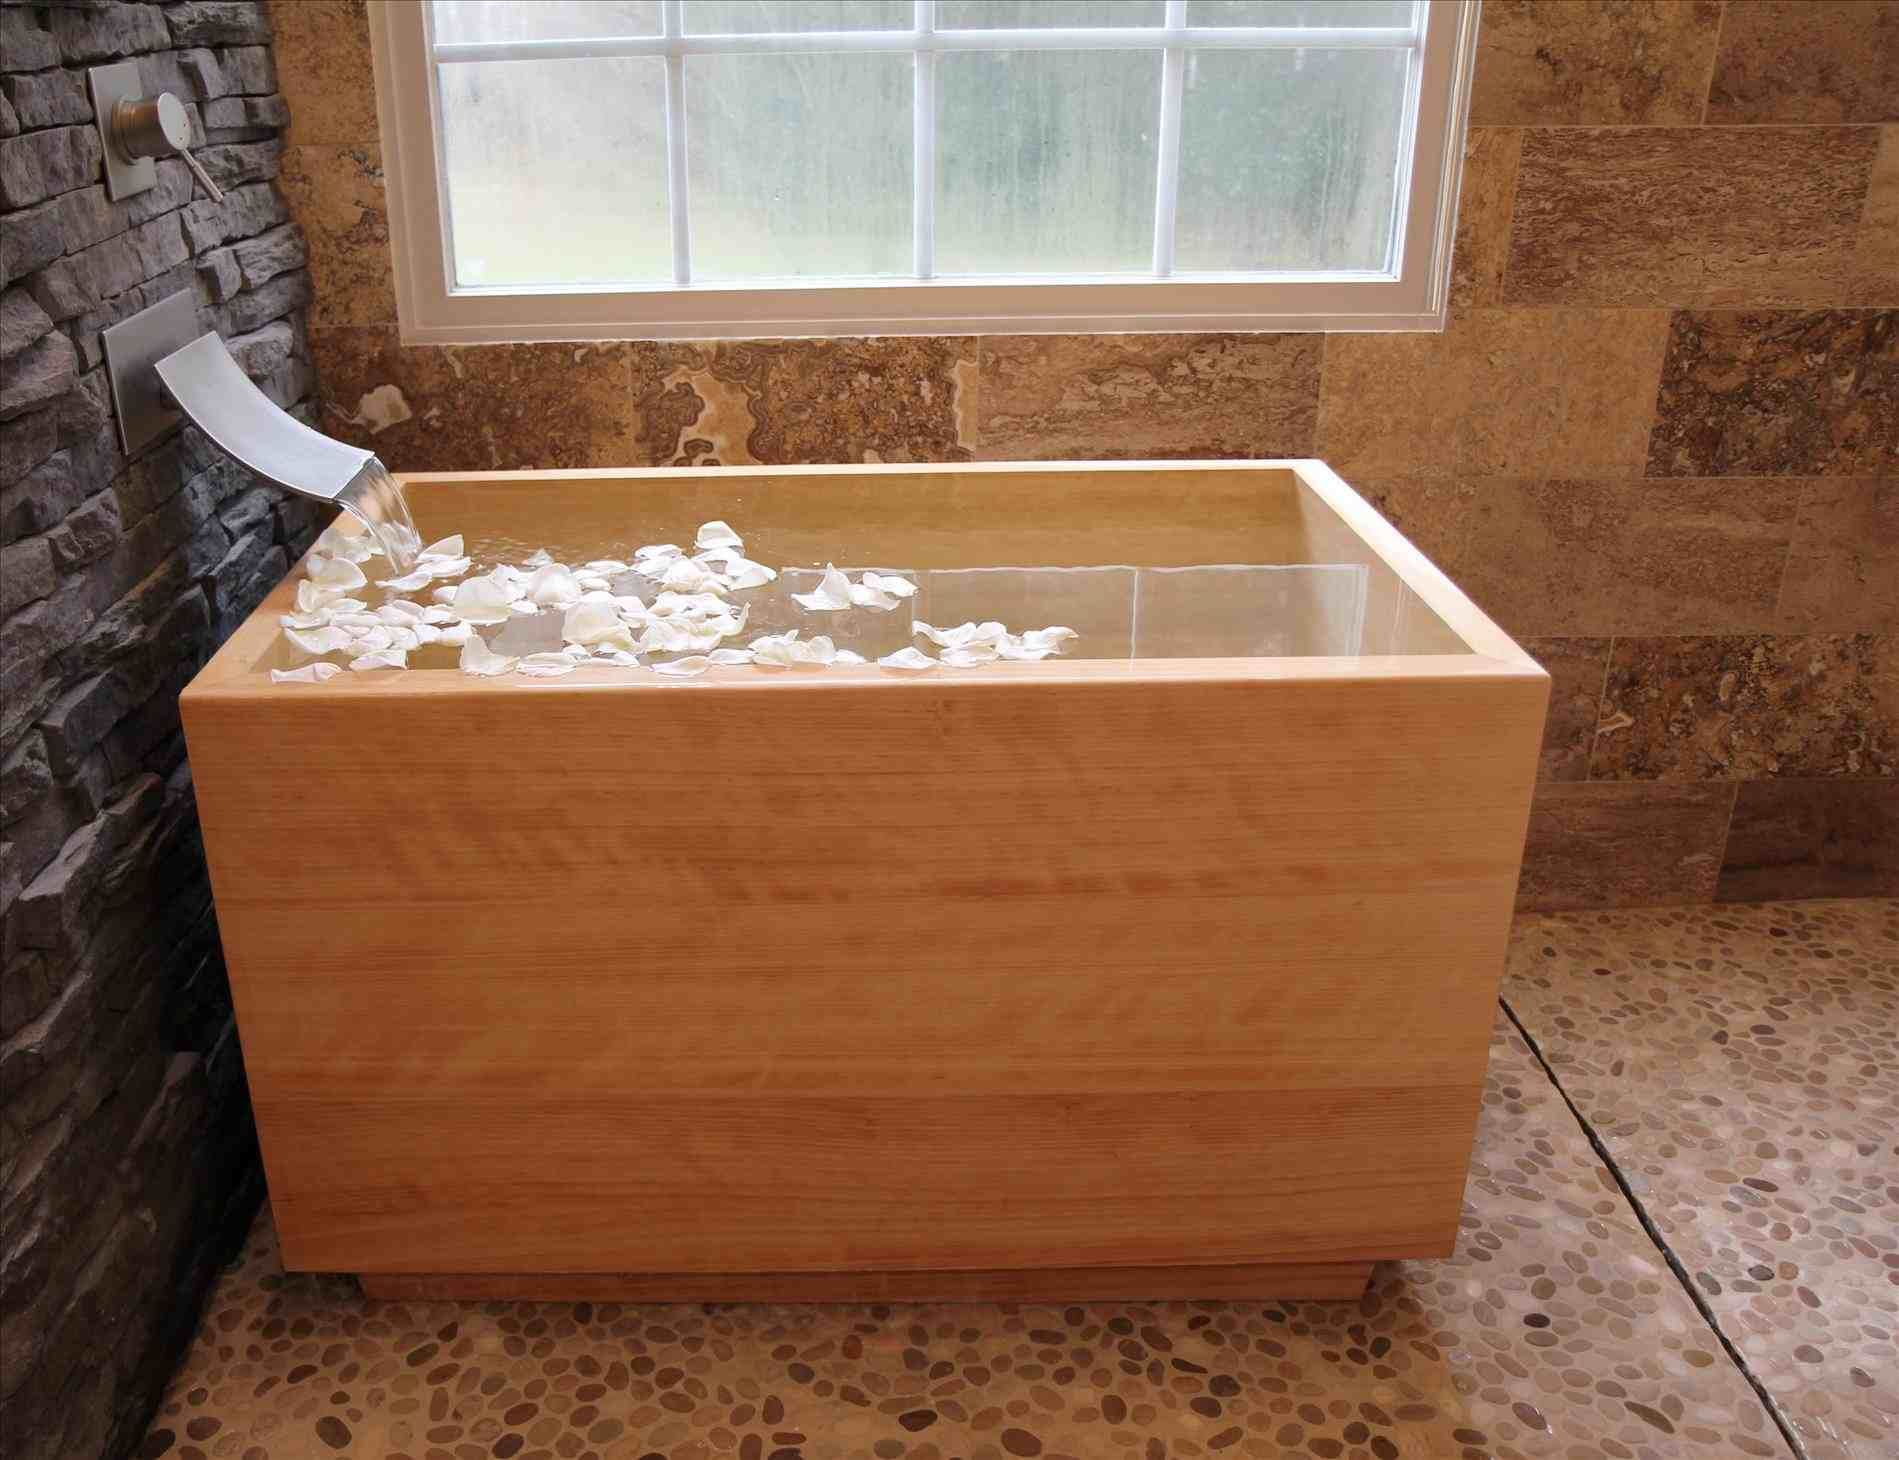 This japanese soaking tub outdoor diy - pictures-042_11057949605_o ...